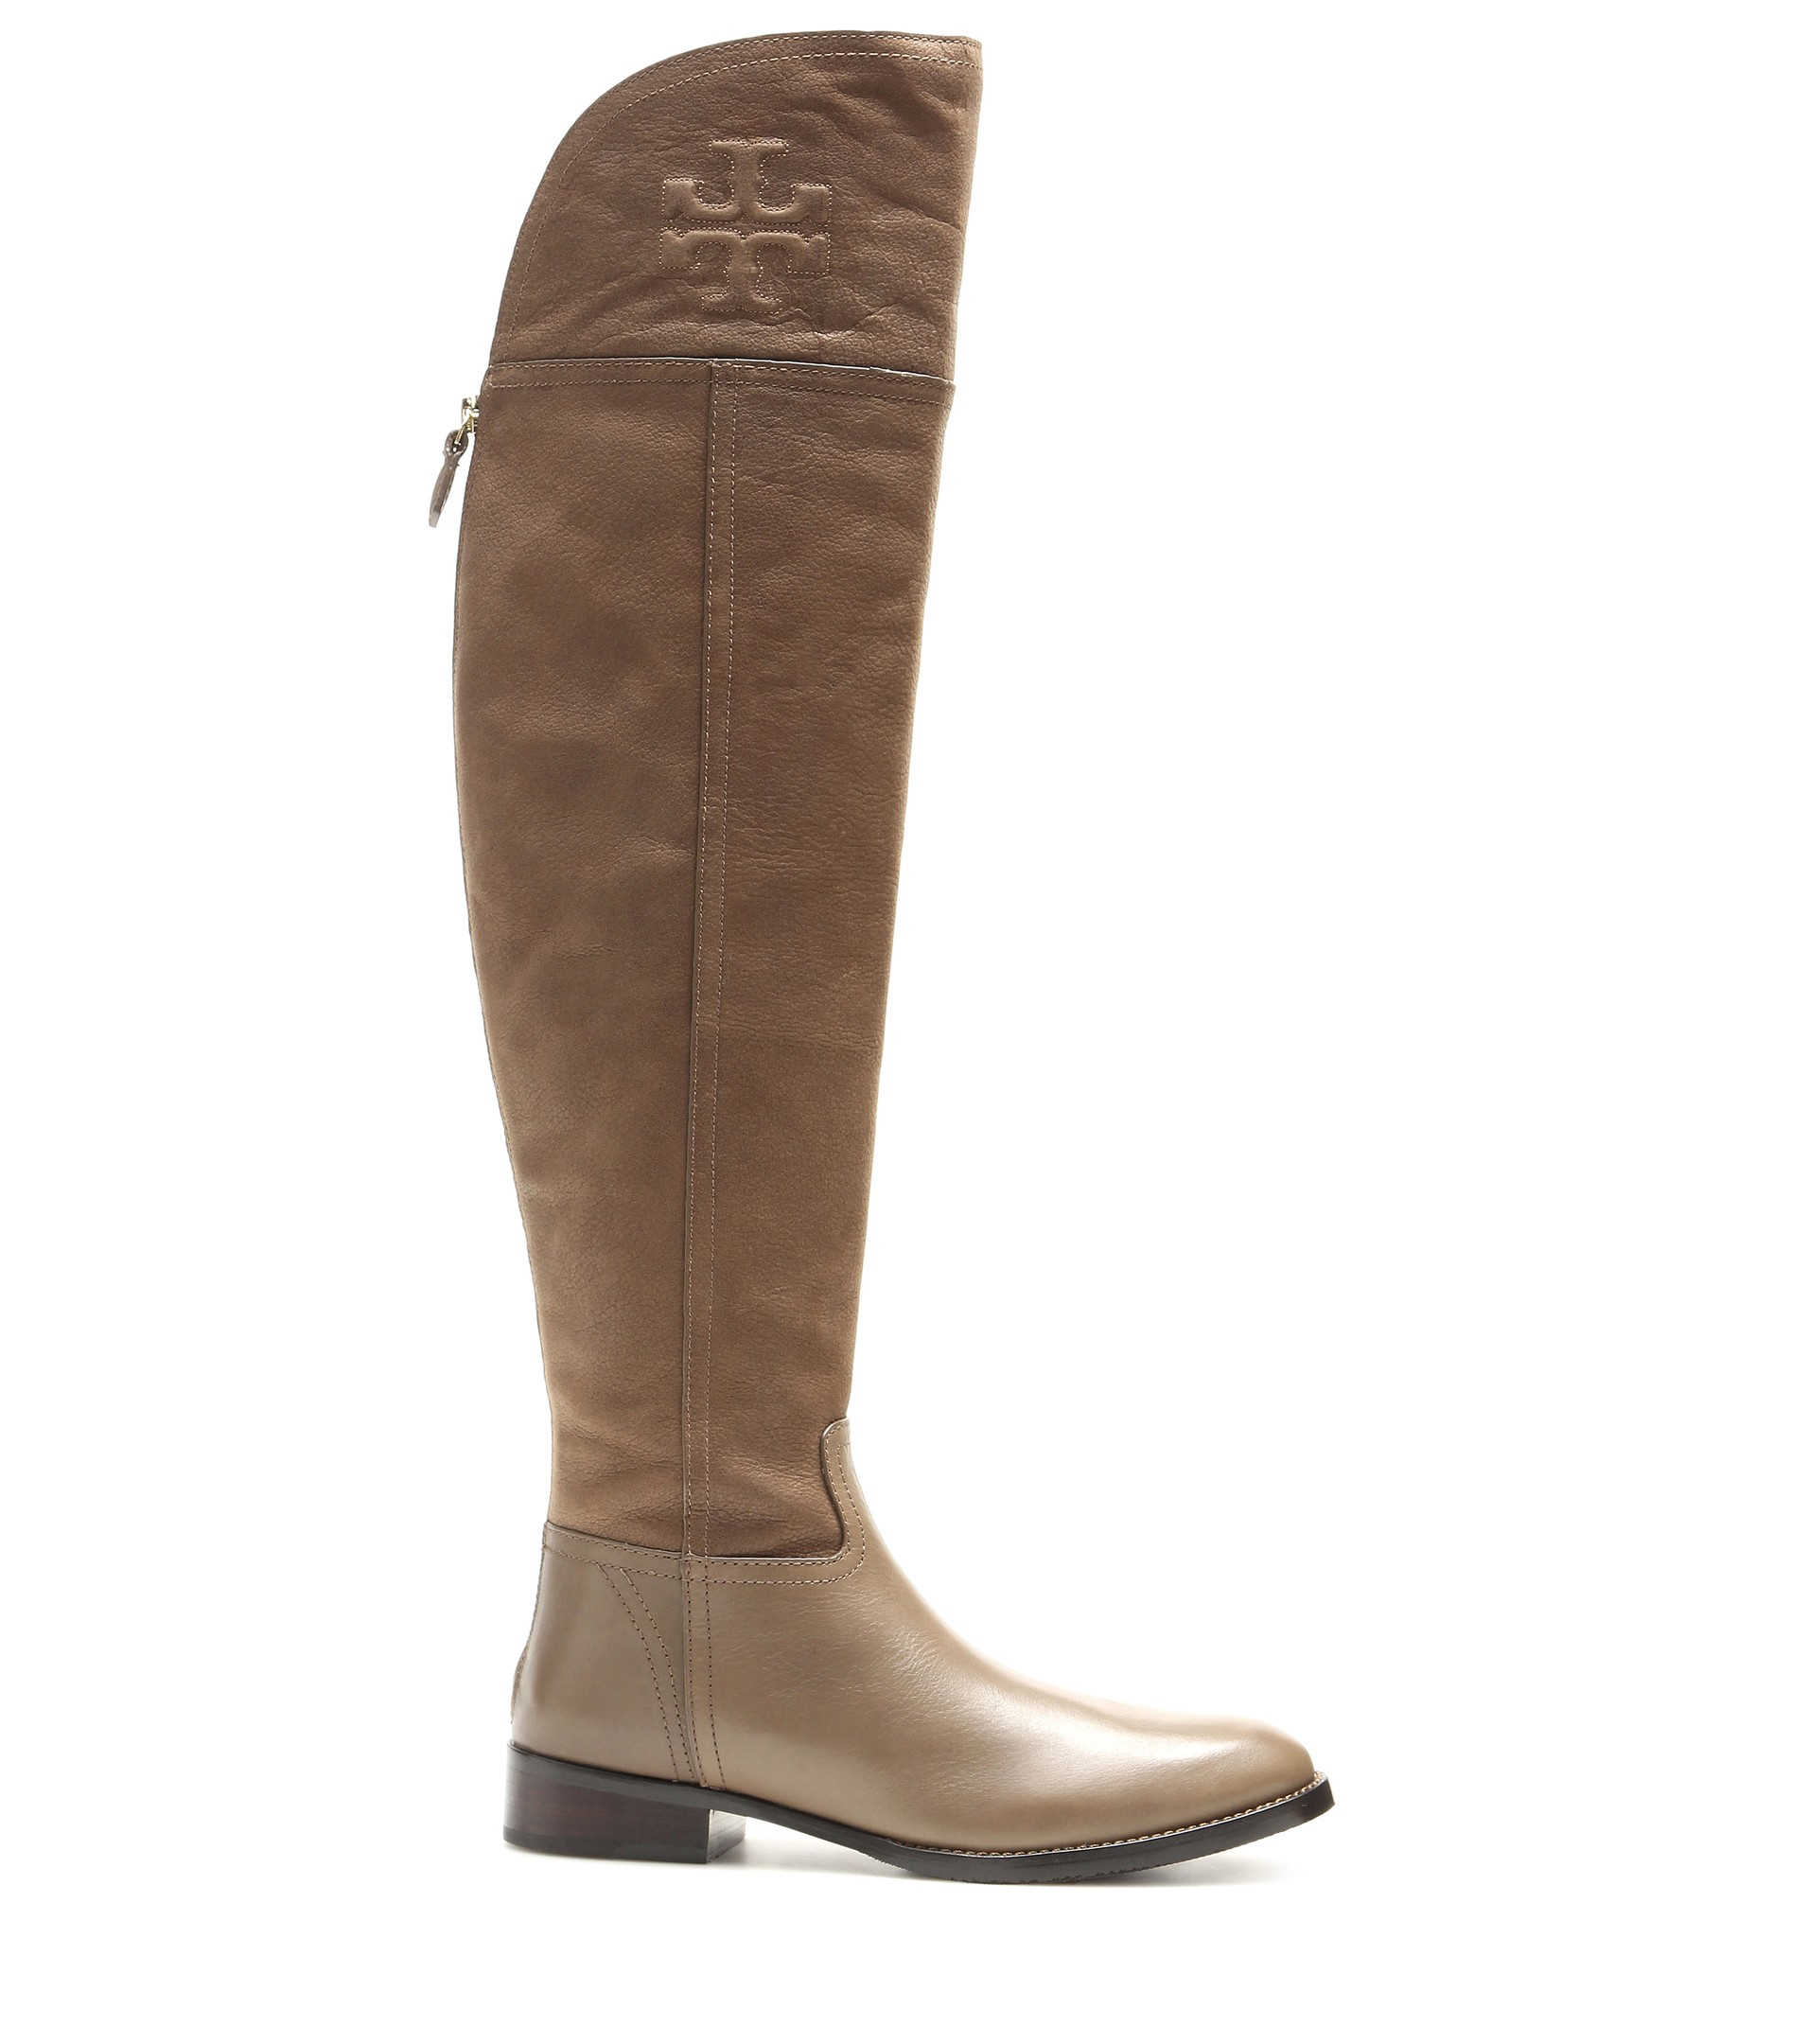 820273bb2 Tory Burch Simone Over-The-Knee Boots in Brown - Lyst